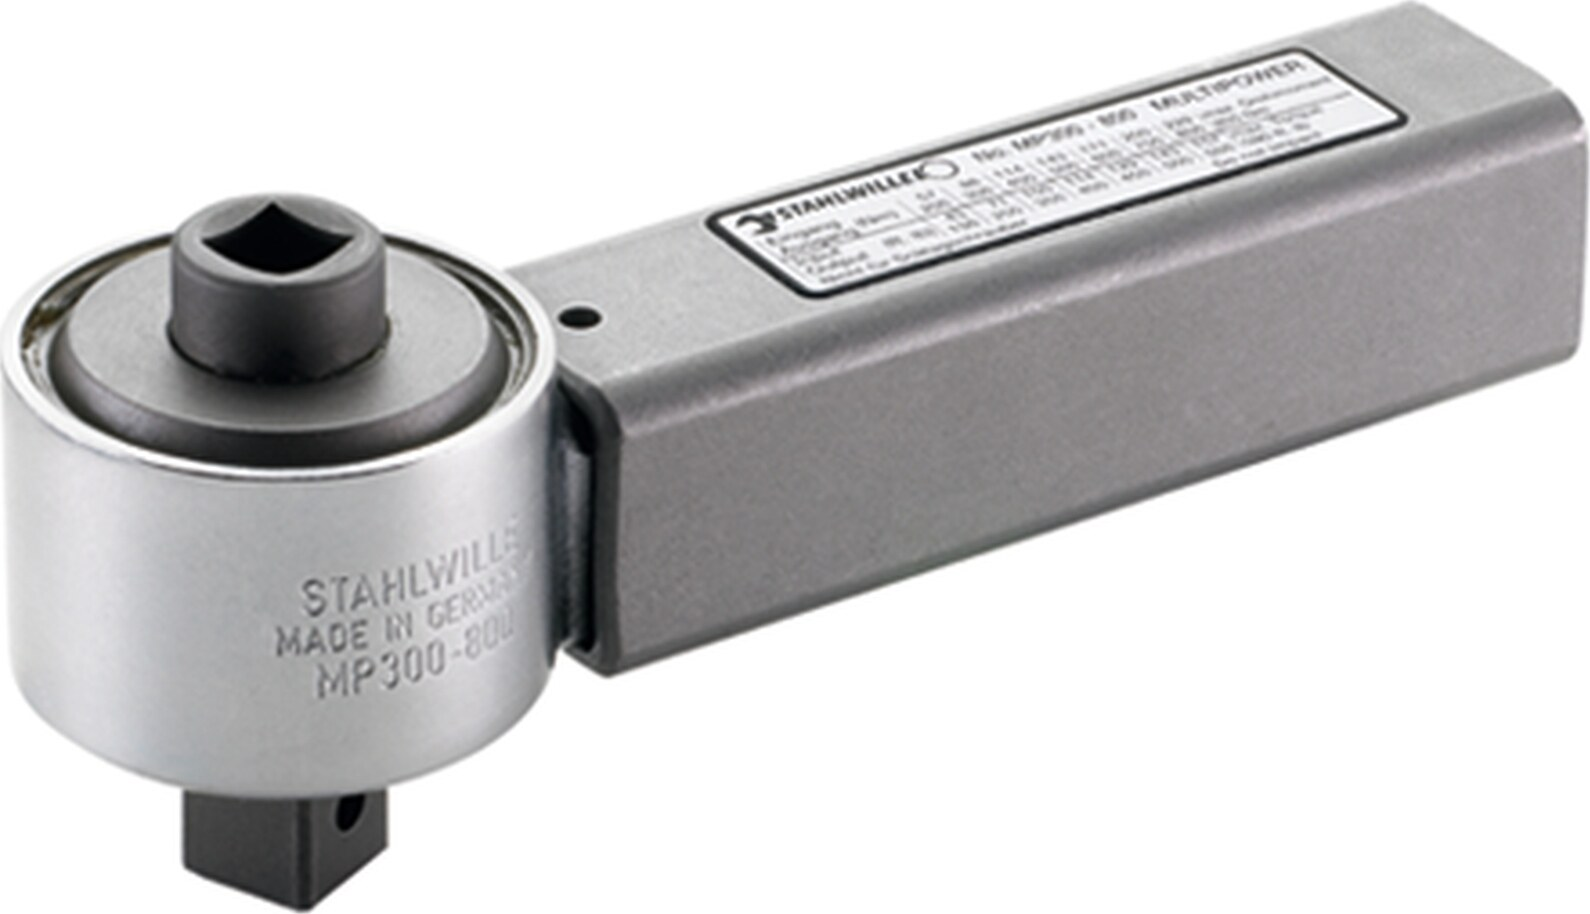 "Stahlwille MULTIPOWER size3000 *) 3000 Nm inside square 3/4 "" external square 1 "", 1 "", 3000 Nm"